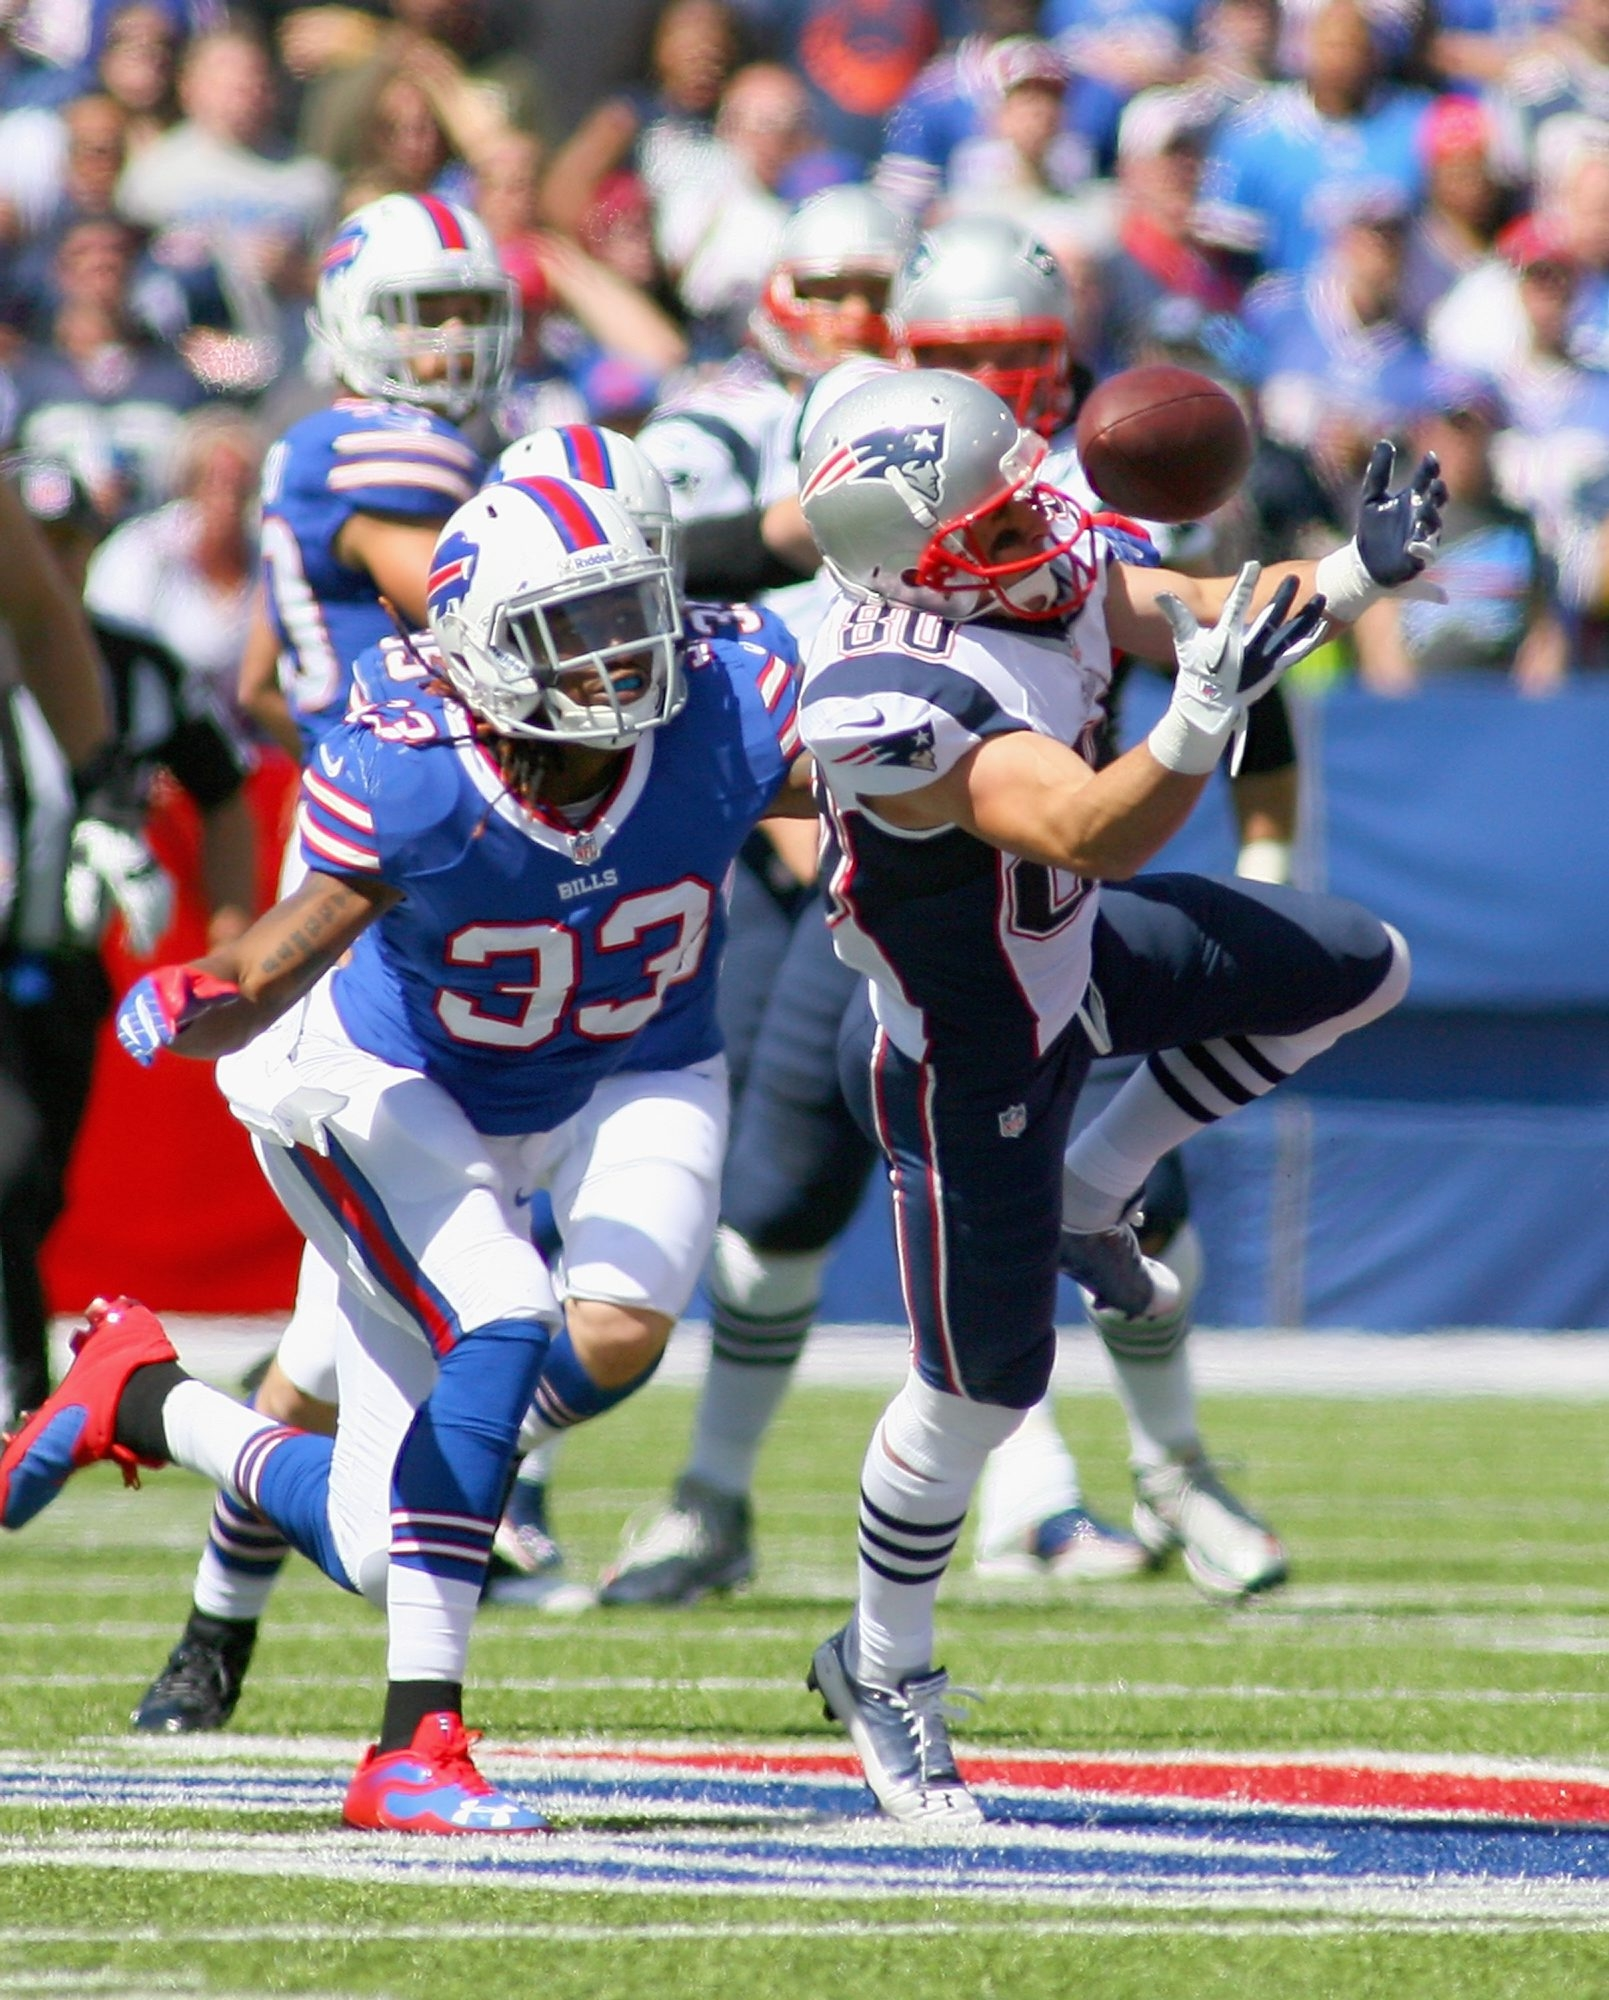 ORCHARD PARK, NY - SEPTEMBER 08:  Danny Amendola #80 of the New England Patriots makes a catch against  Ron Brooks #33 of the Buffalo Bills at Ralph Wilson Stadium on September 8, 2013 in Orchard Park, New York.  (Photo by Rick Stewart/Getty Images)